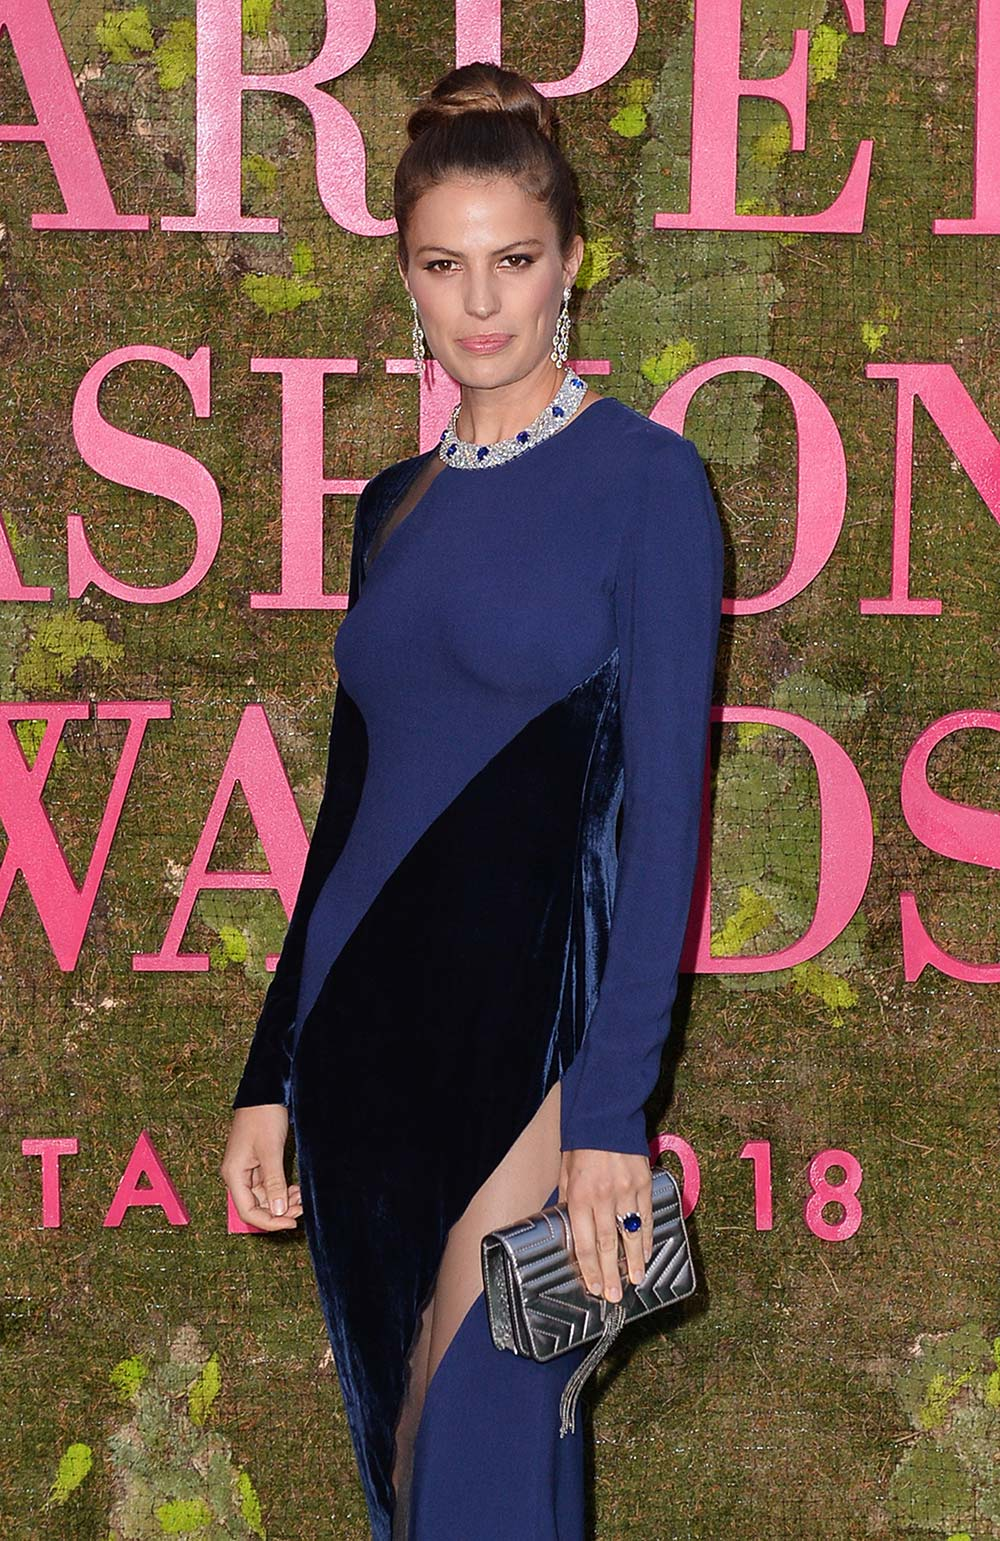 Green Carpet Fashion Awards 2018 - Cameron Russel - Hair & Makeup Massimo Serini Team